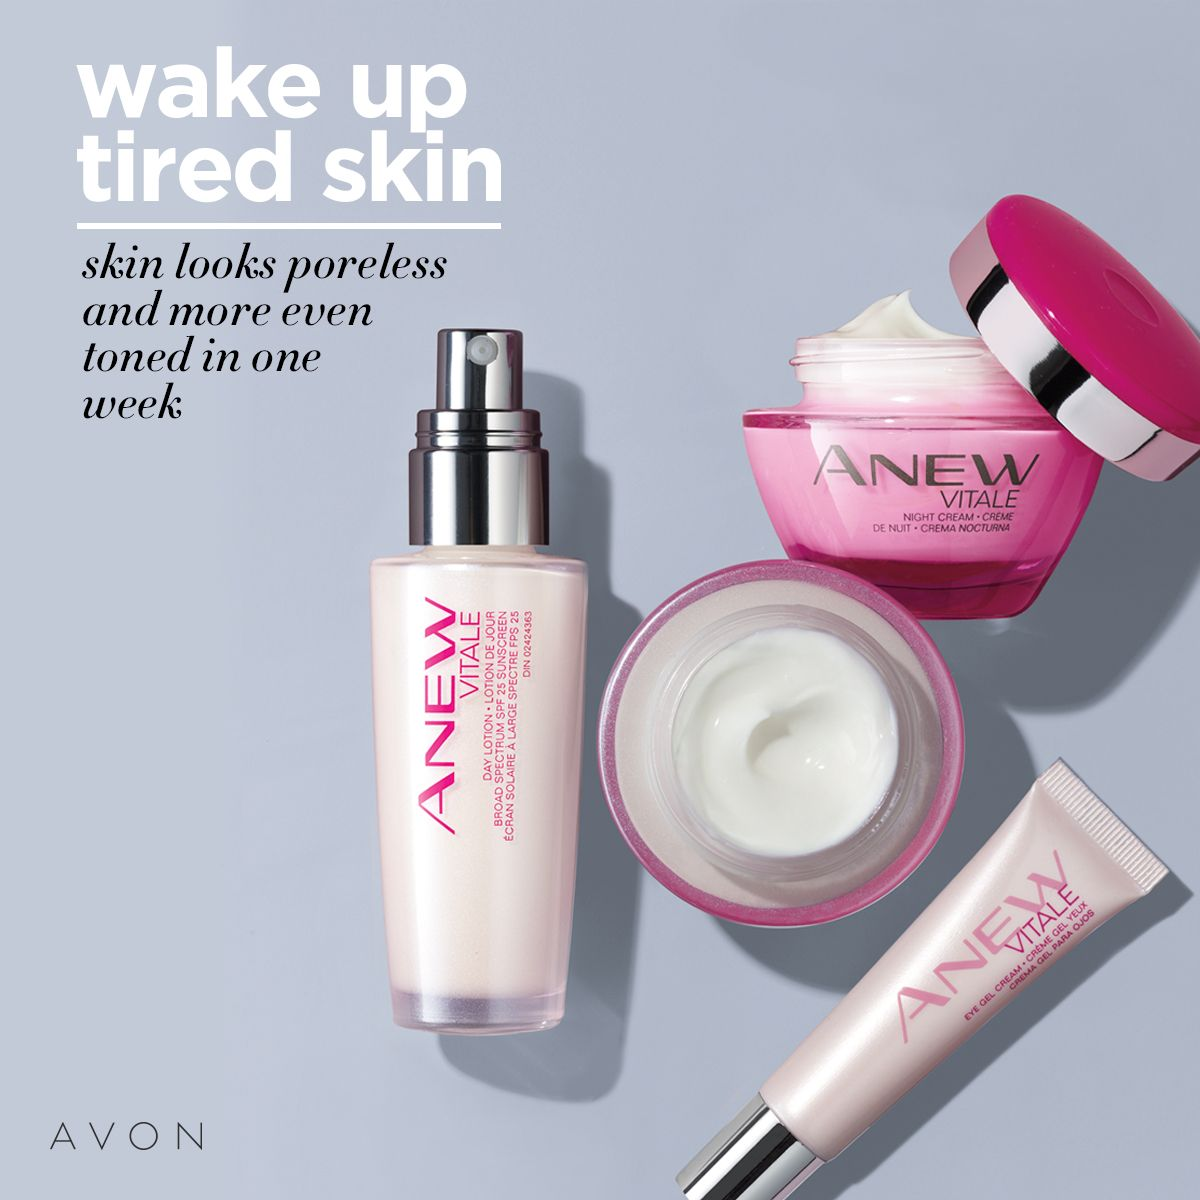 Pin By Alicia Lamey On Avon Rep In 2020 Avon Skin Care Even Out Skin Tone Skin Care Help